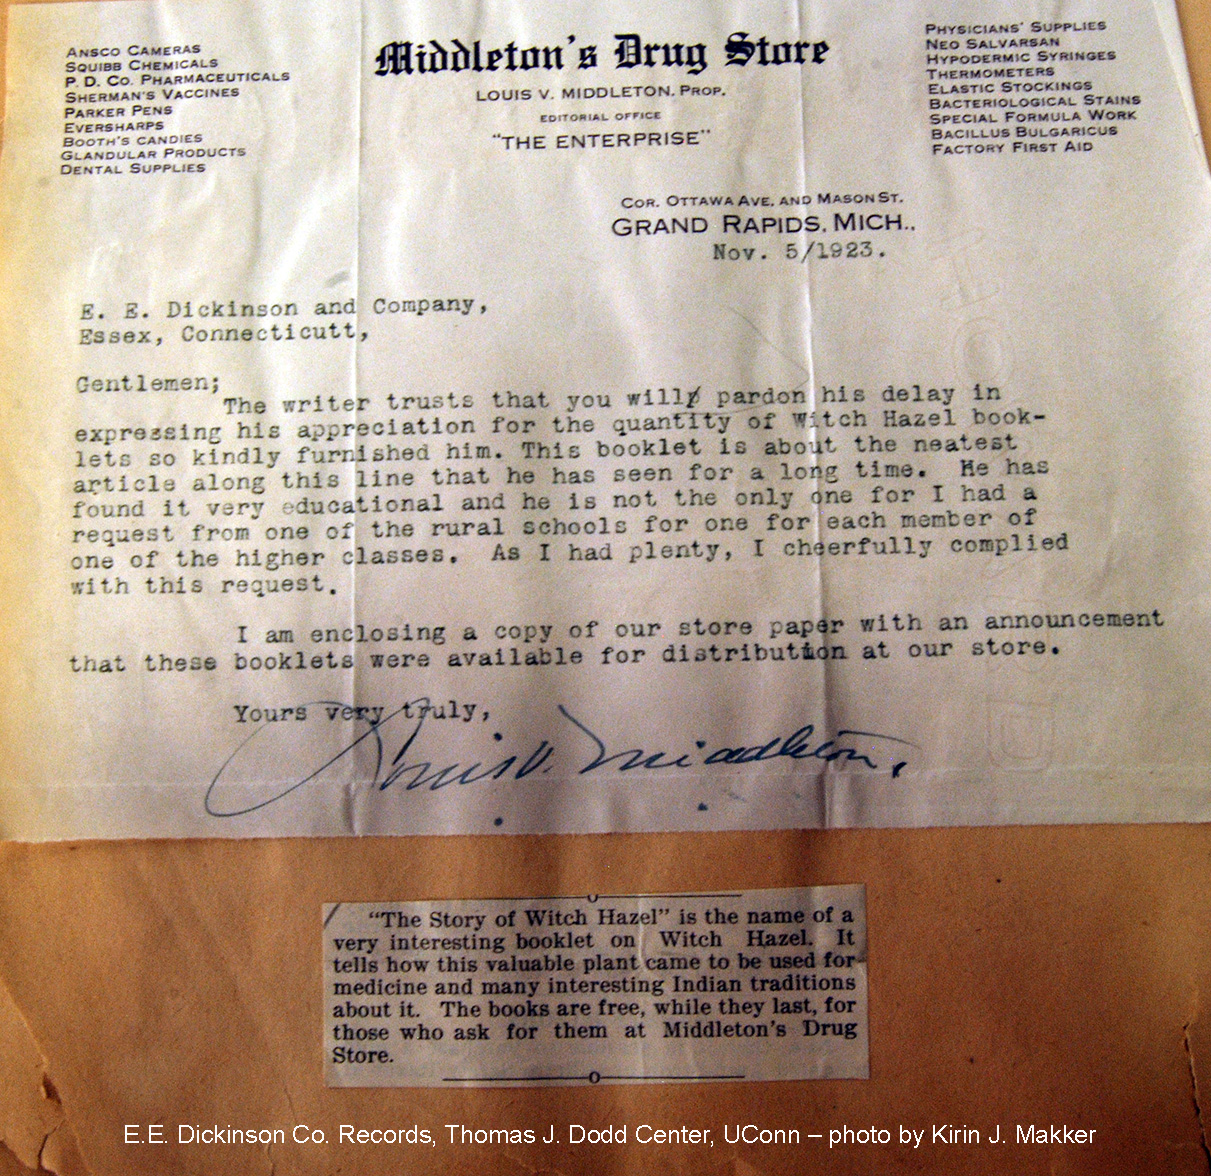 Letter to E. E. Dickinson Company from Middleton's Drug Store in Grand Rapids, Michigan, November 5, 1923